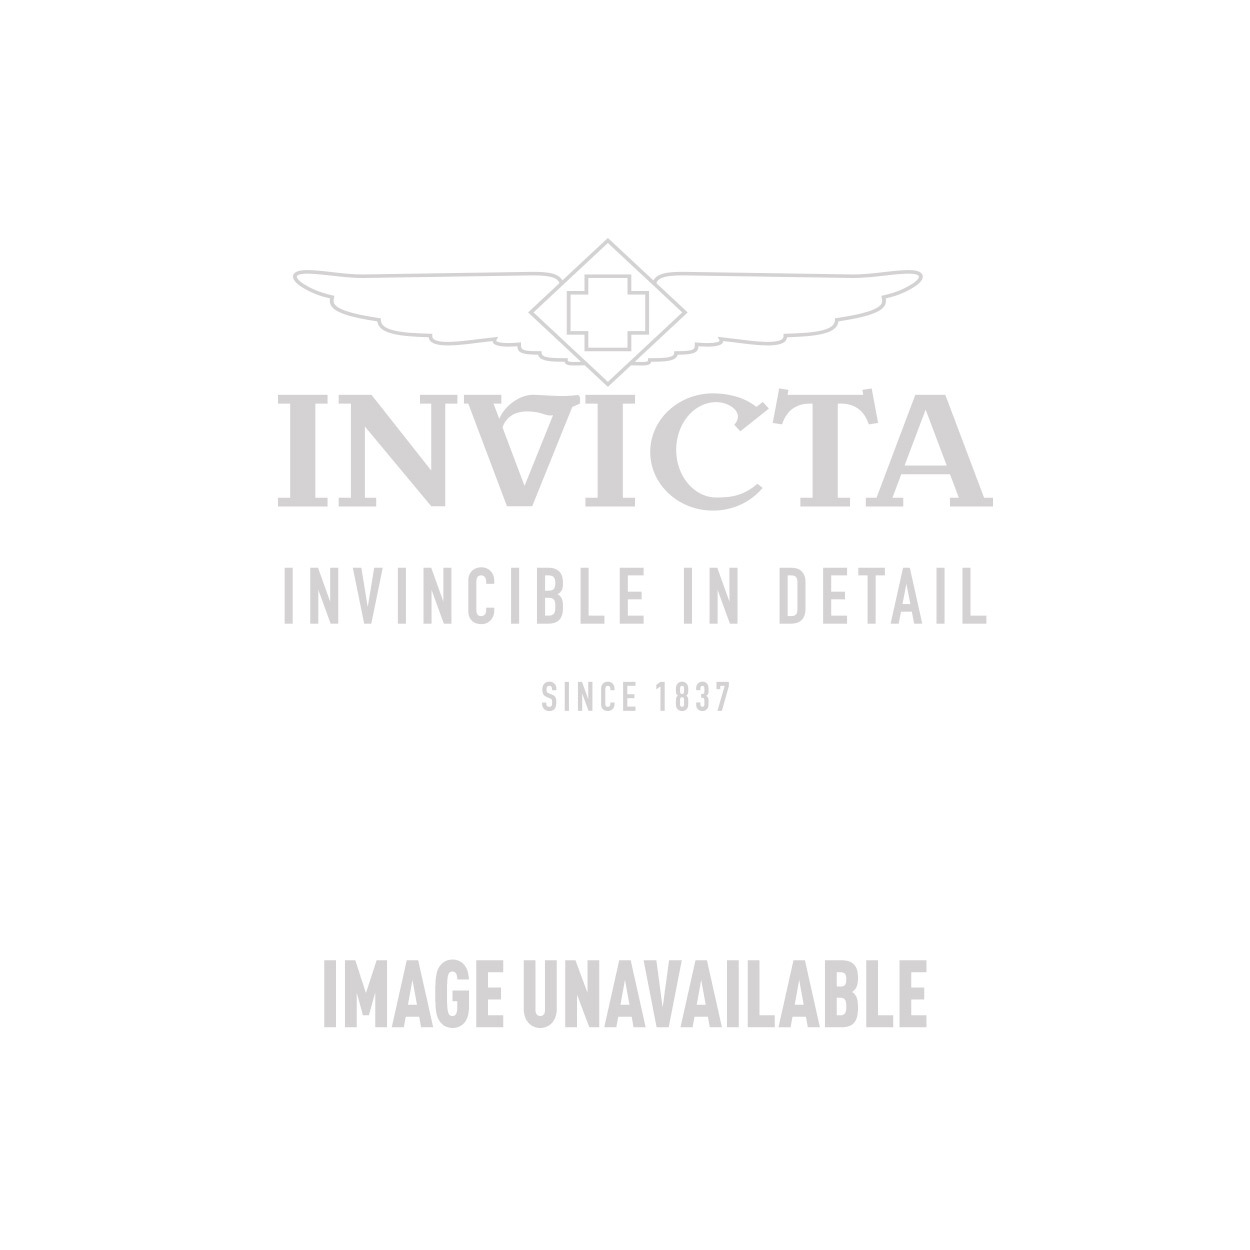 Invicta I-Force Quartz Watch - Stainless Steel case with Brown tone Leather band - Model 3328